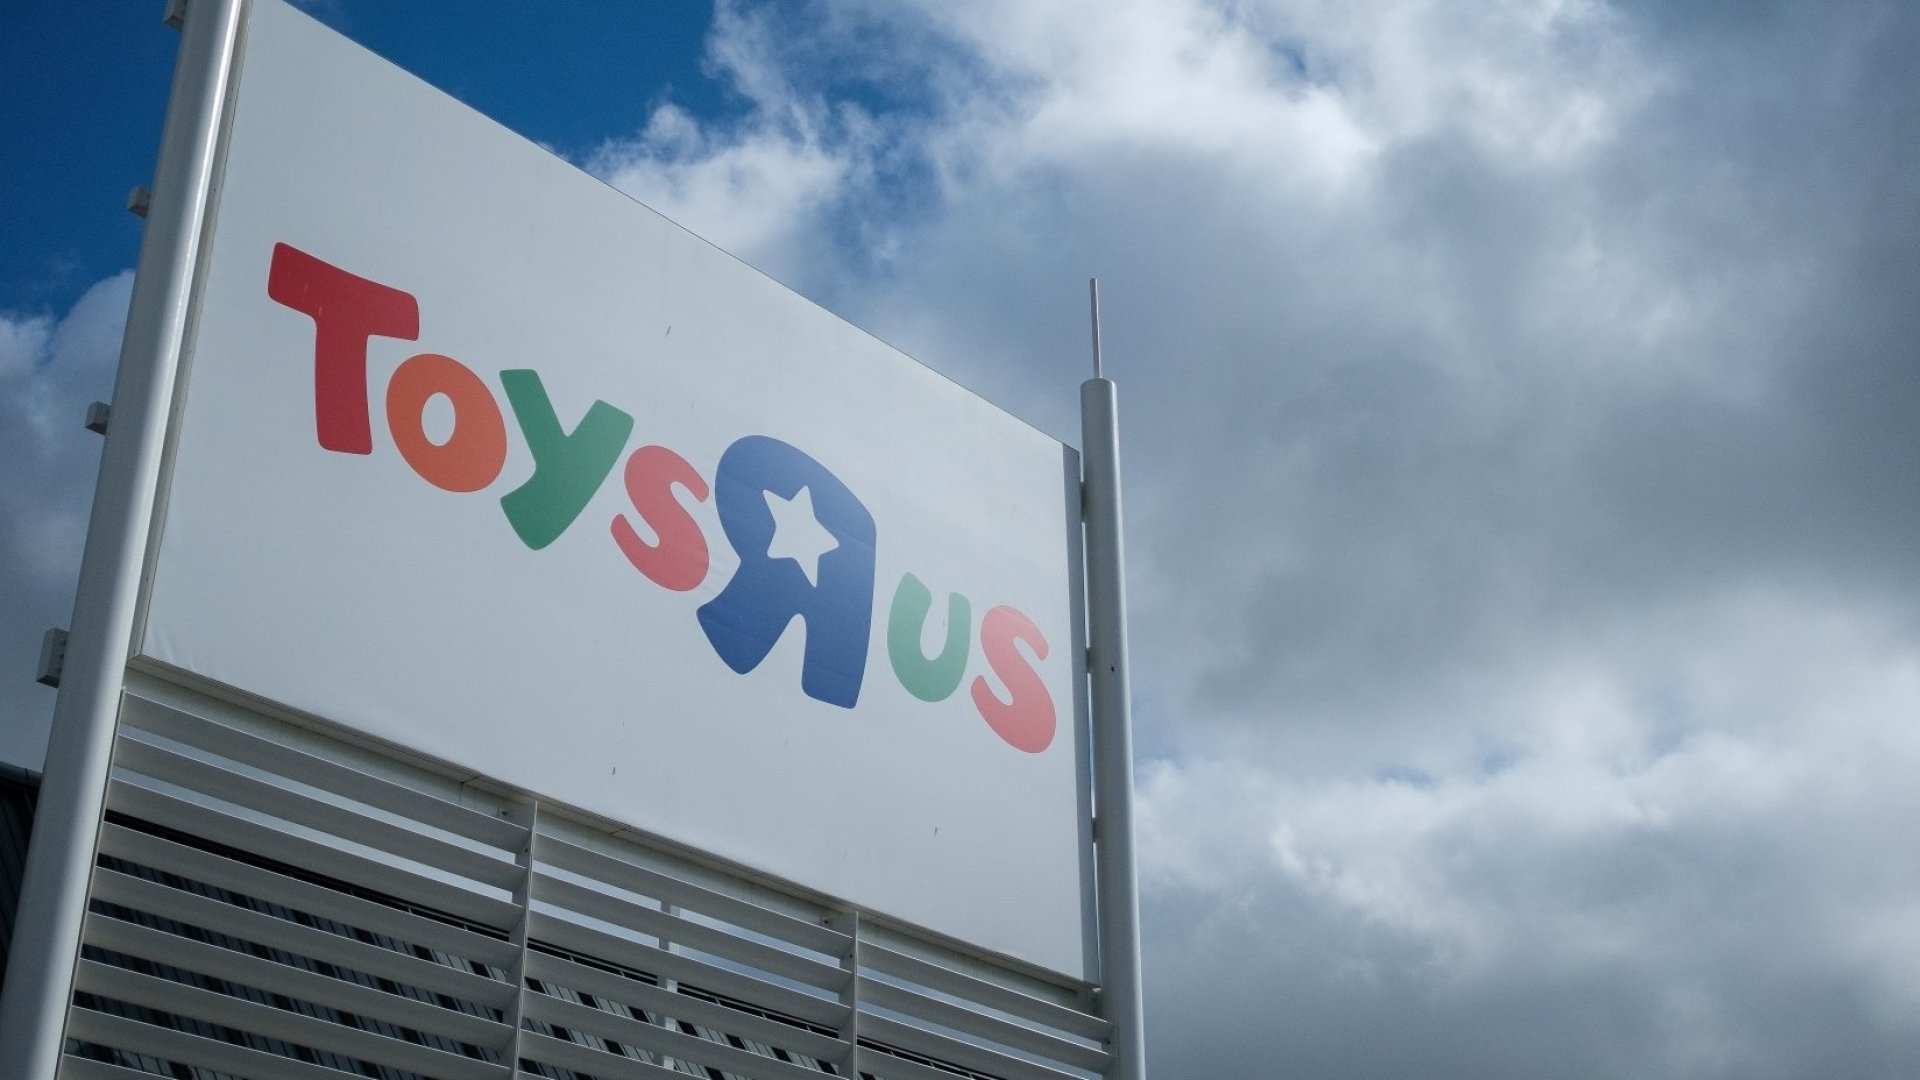 Target Just Made an Amazing Announcement About Toys R Us That Will Make Its Fans Very Happy. (But Oh, the Irony!)